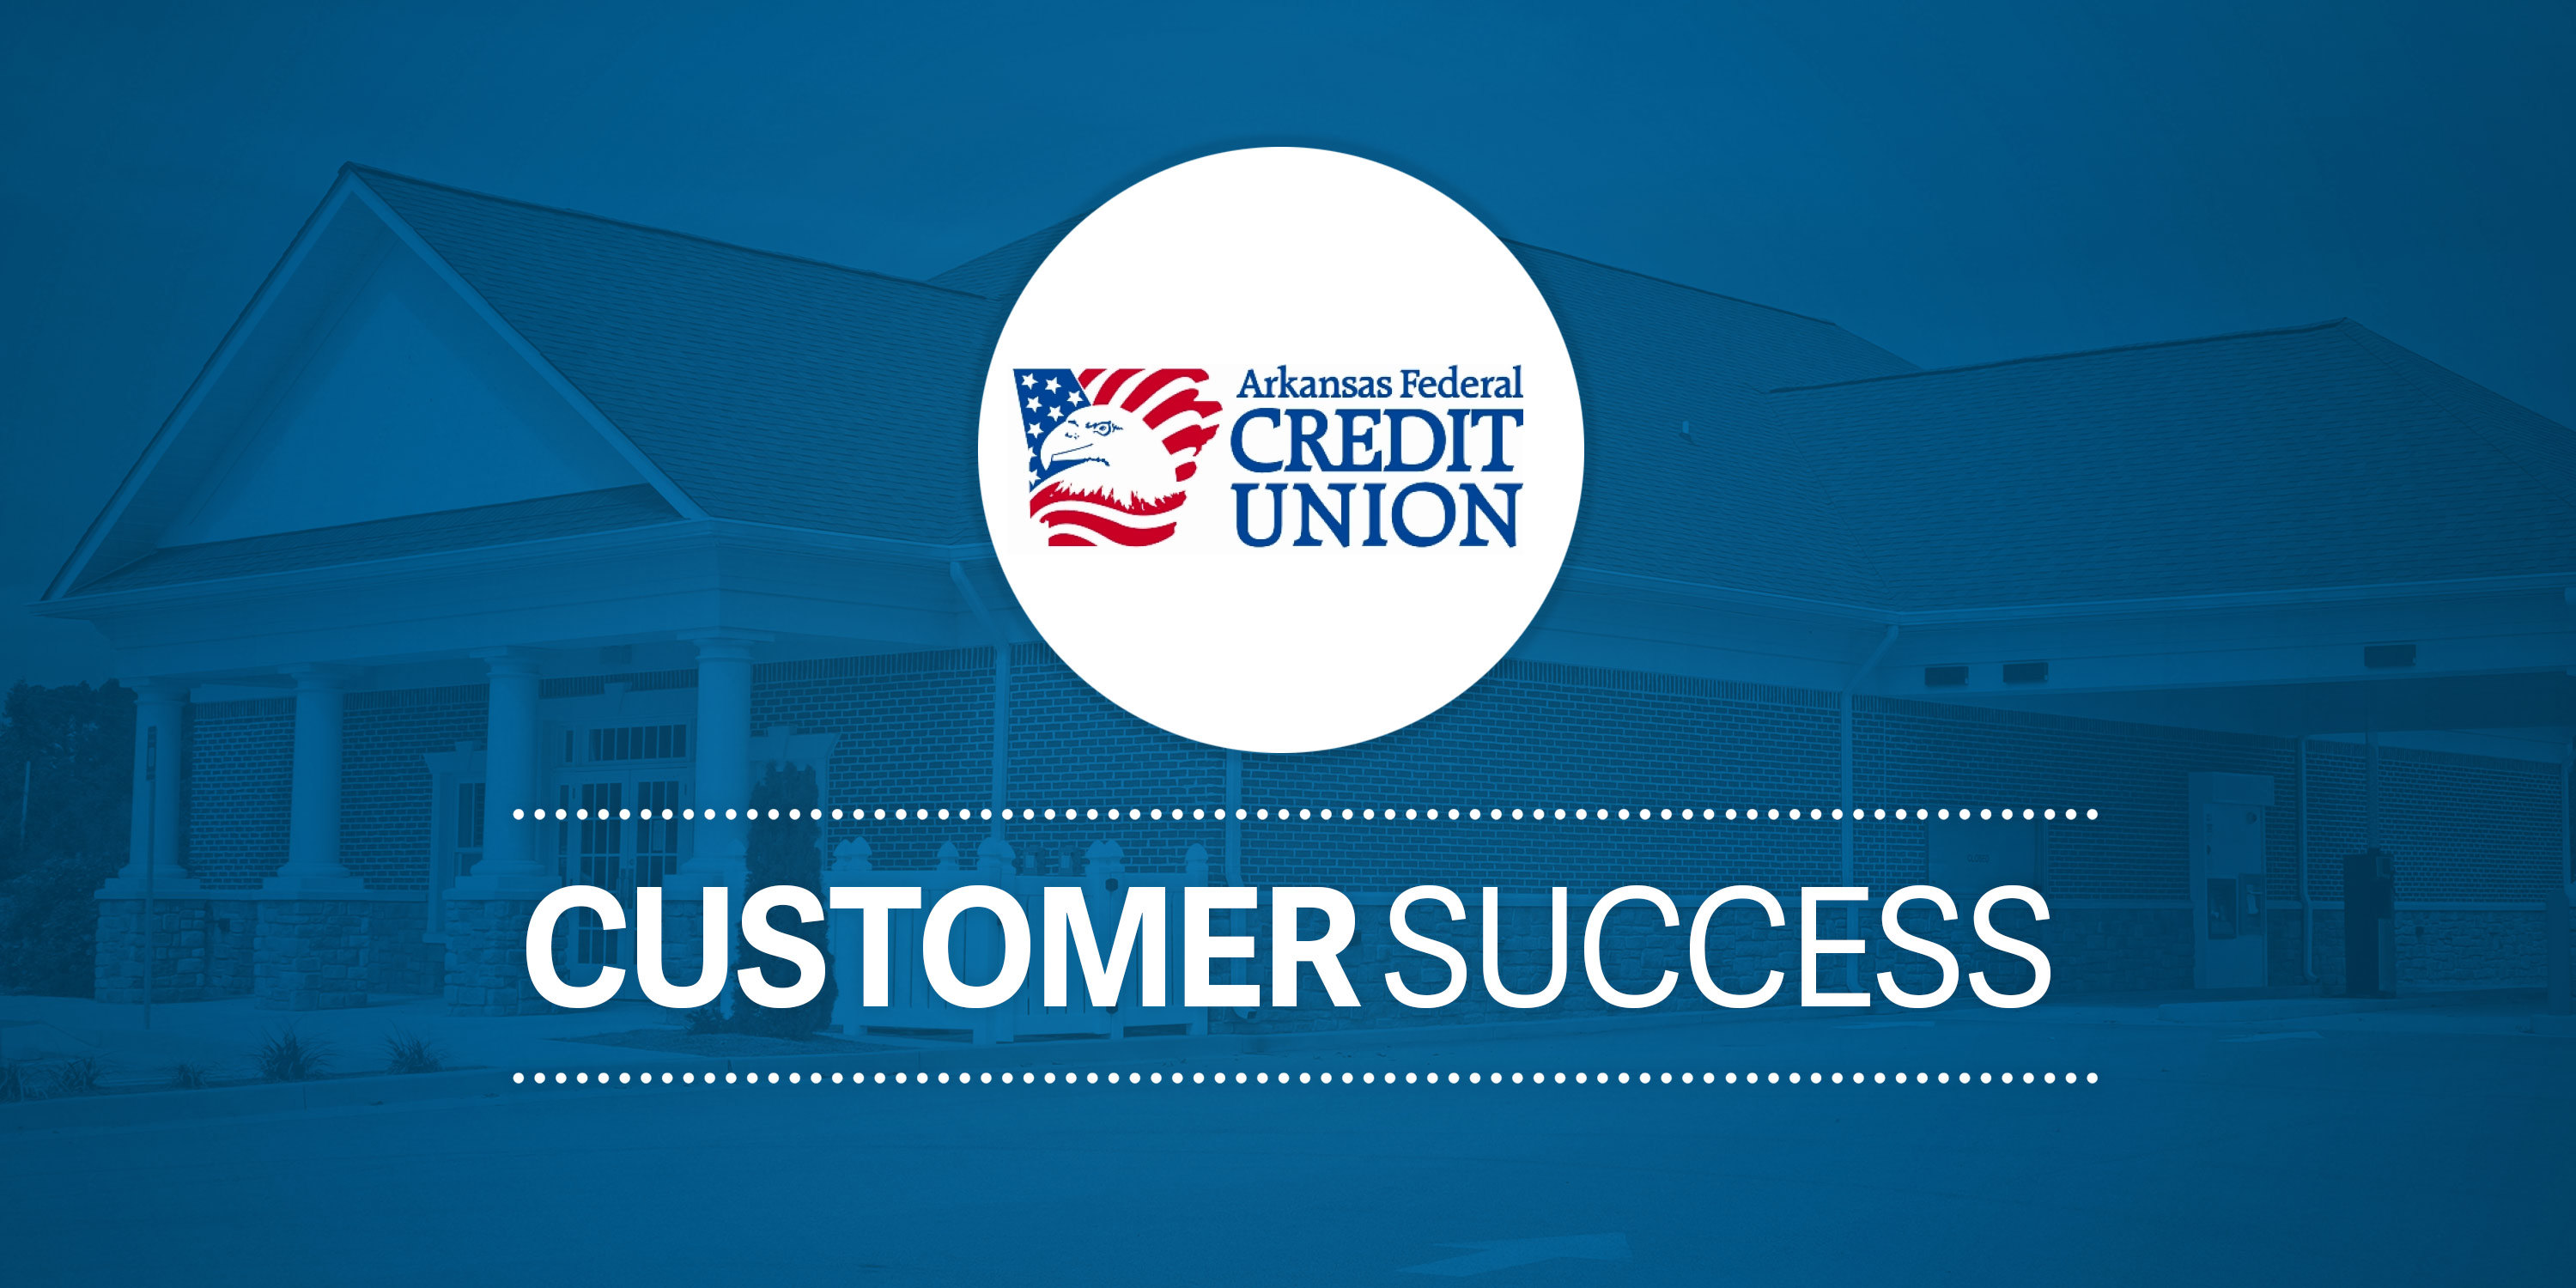 Case Study: Arkansas Federal Credit Union